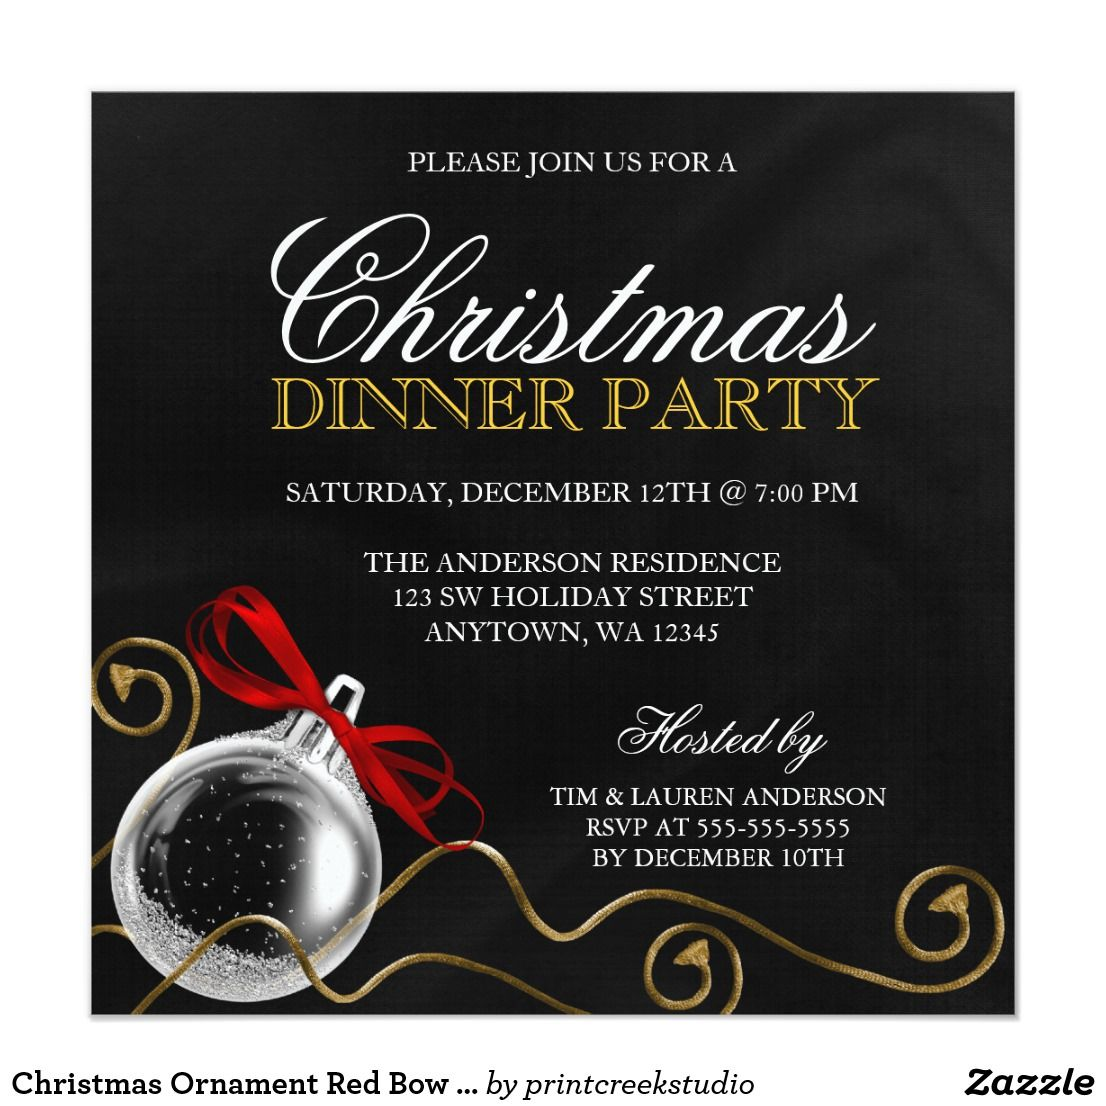 Christmas Ornament Red Bow Dinner Party Card Invite your guests in ...